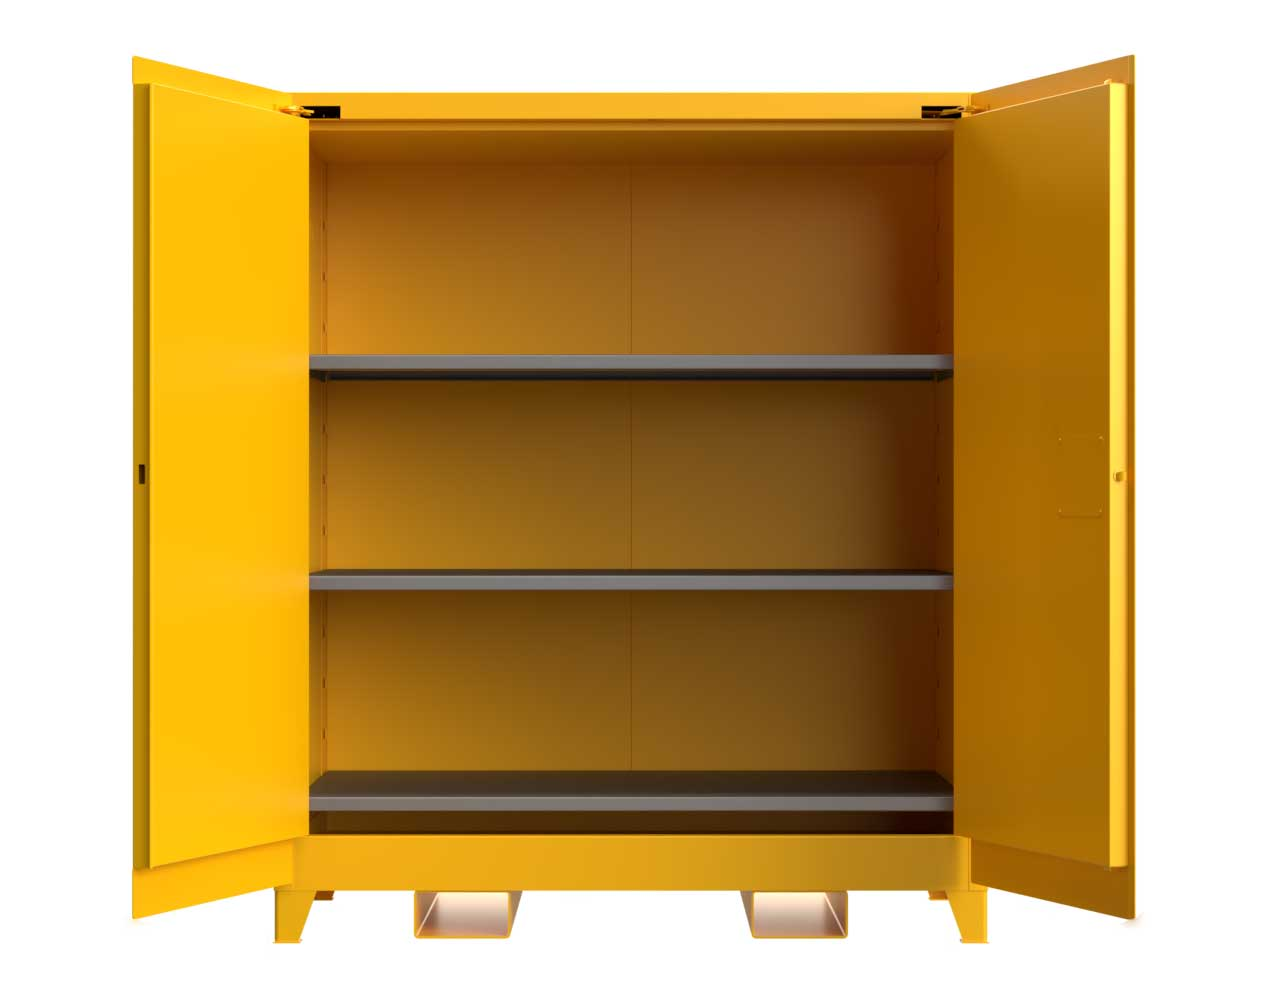 Extra Heavy Duty 14 GA 120 Gallon Flammable Safety Cabinet with Self-Closing Doors, 3 Shelves, Forklift Pockets – 59 In. W x 34 In. D x 70 In. H